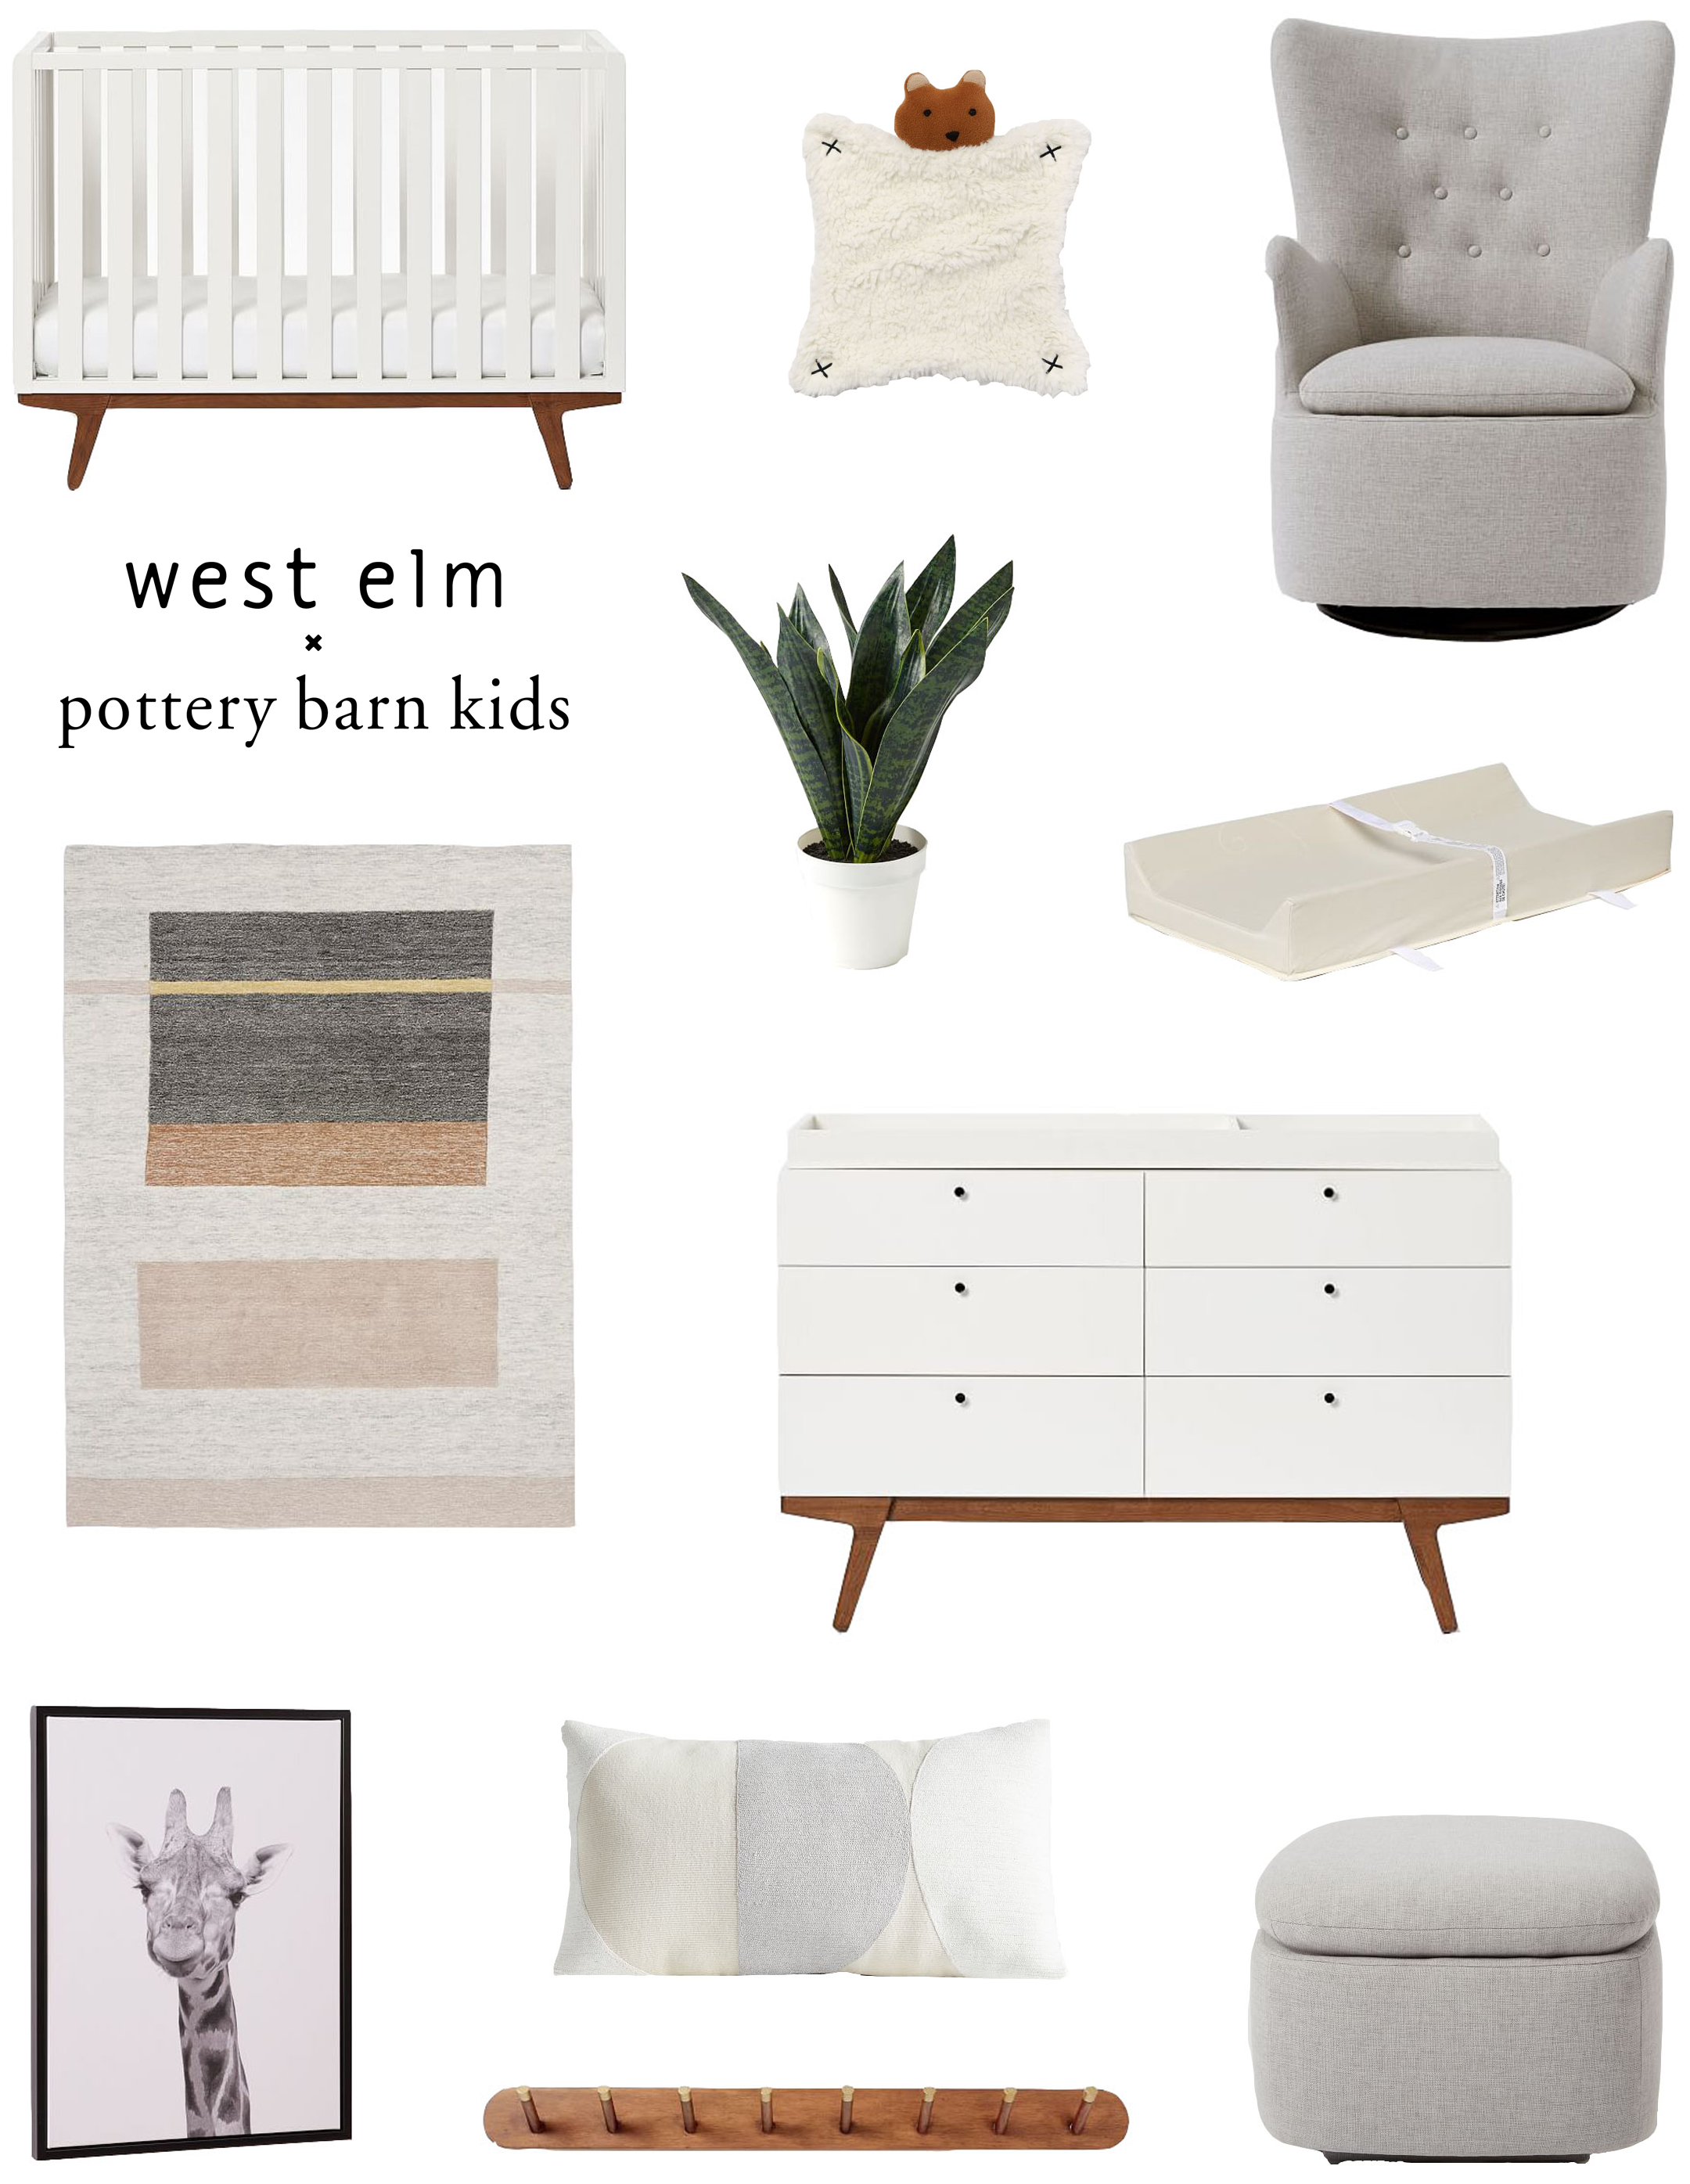 west elm and pottery barn kids collaboration - West Elm Owned By Pottery Barn